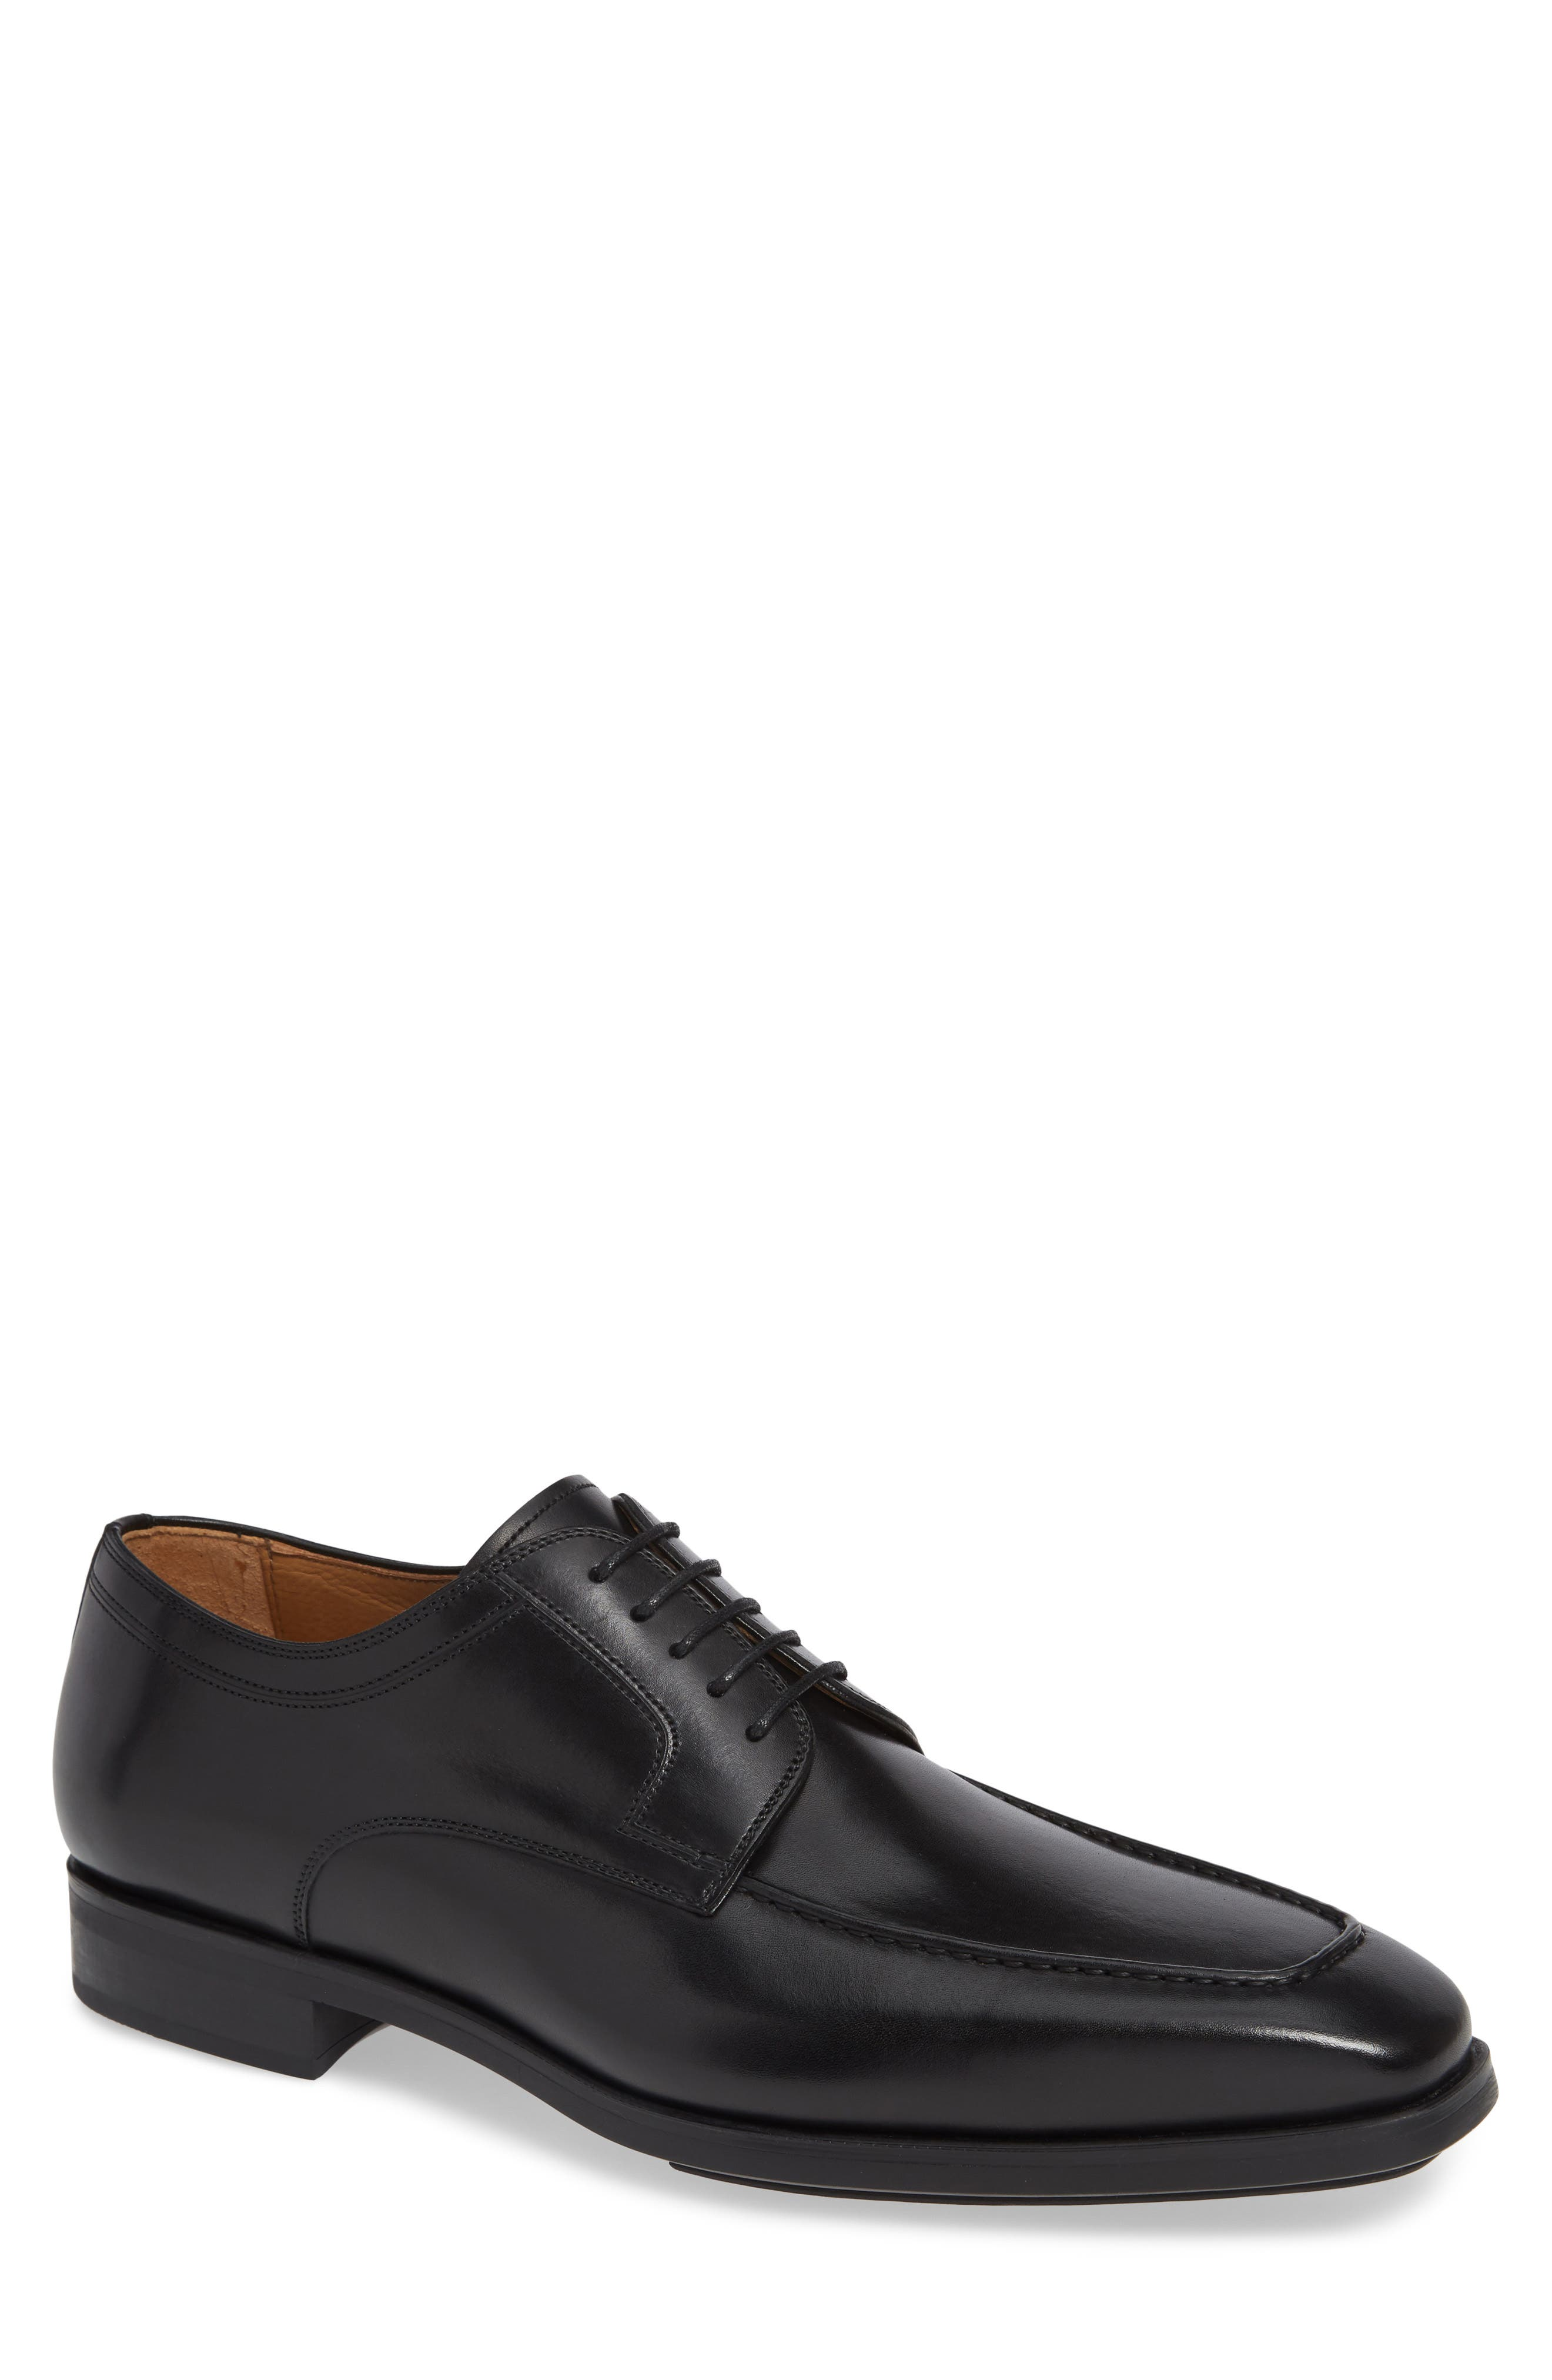 MAGNANNI Romelo Diversa Apron Toe Derby, Main, color, BLACK LEATHER